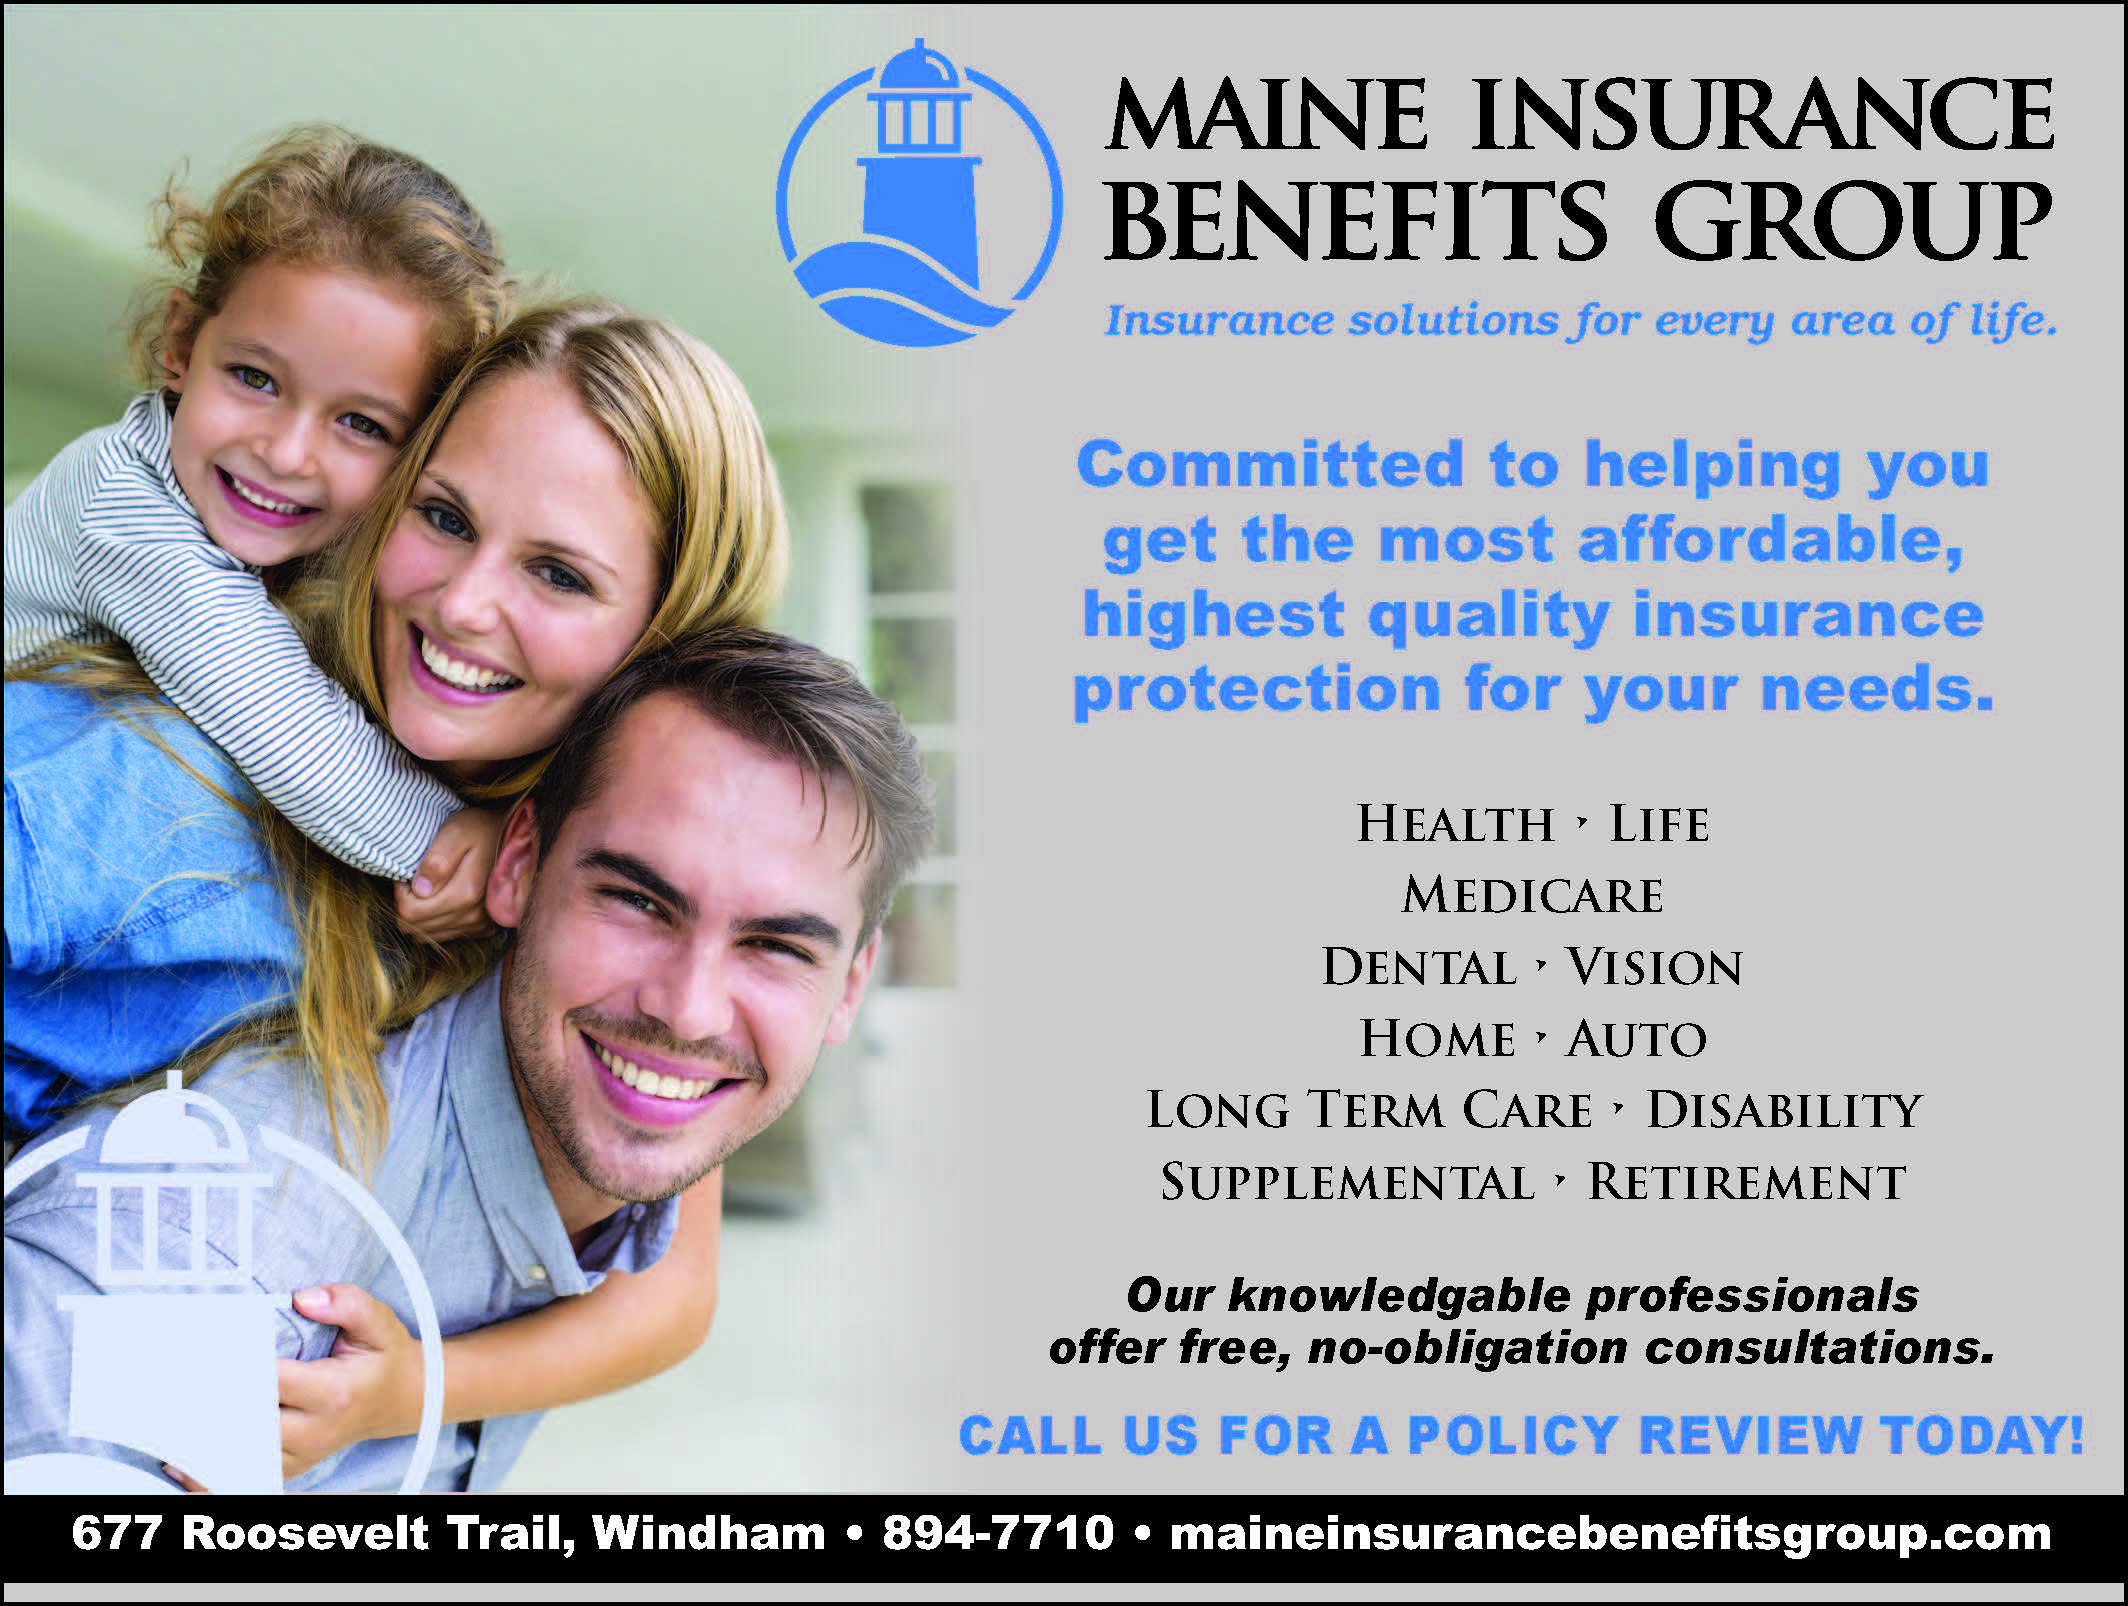 https://www.maineinsurancebenefitsgroup.com/